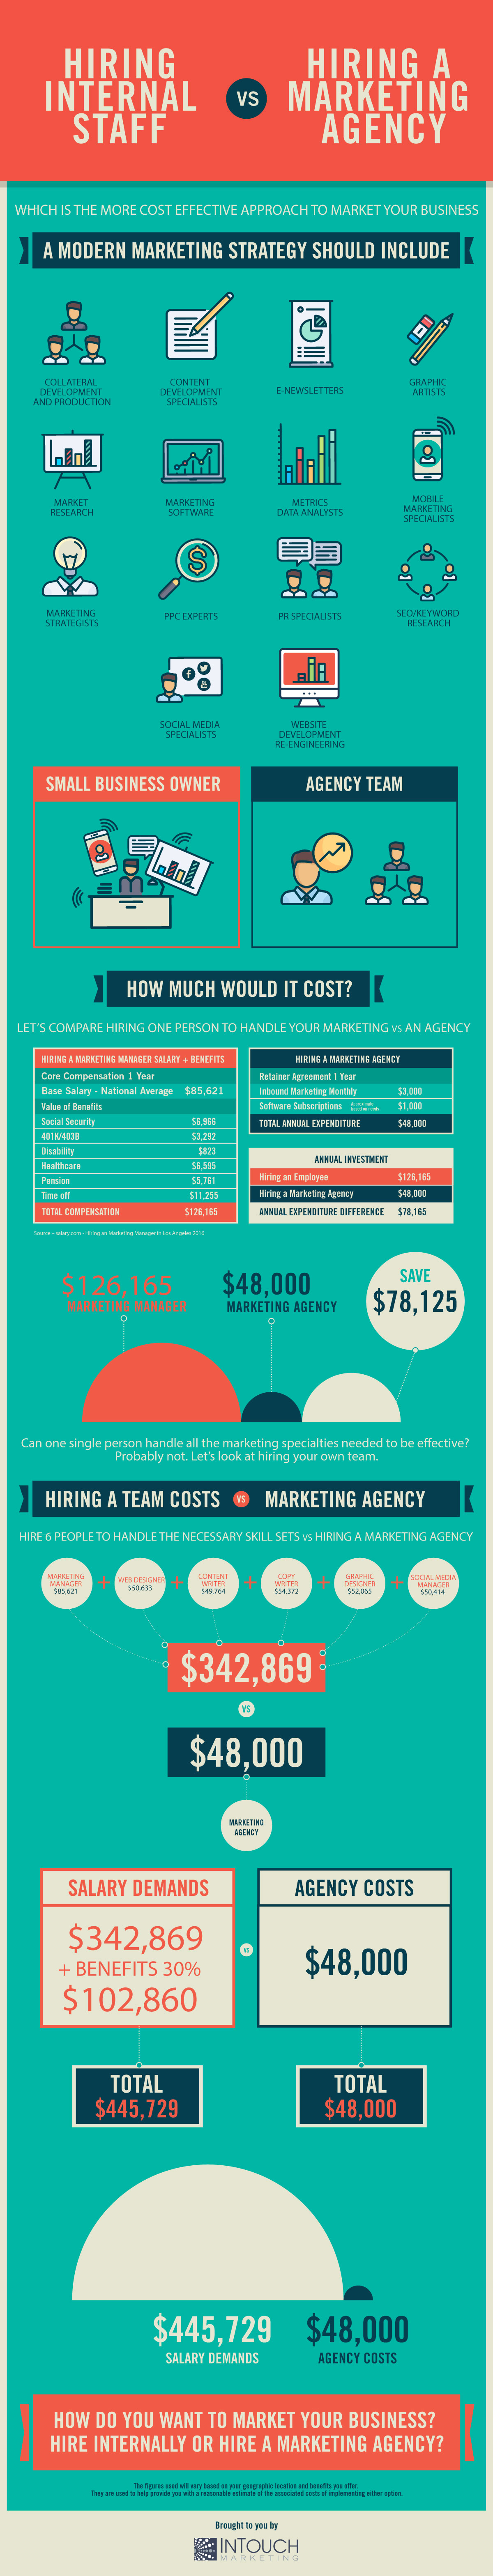 Inbound Marketing Pricing